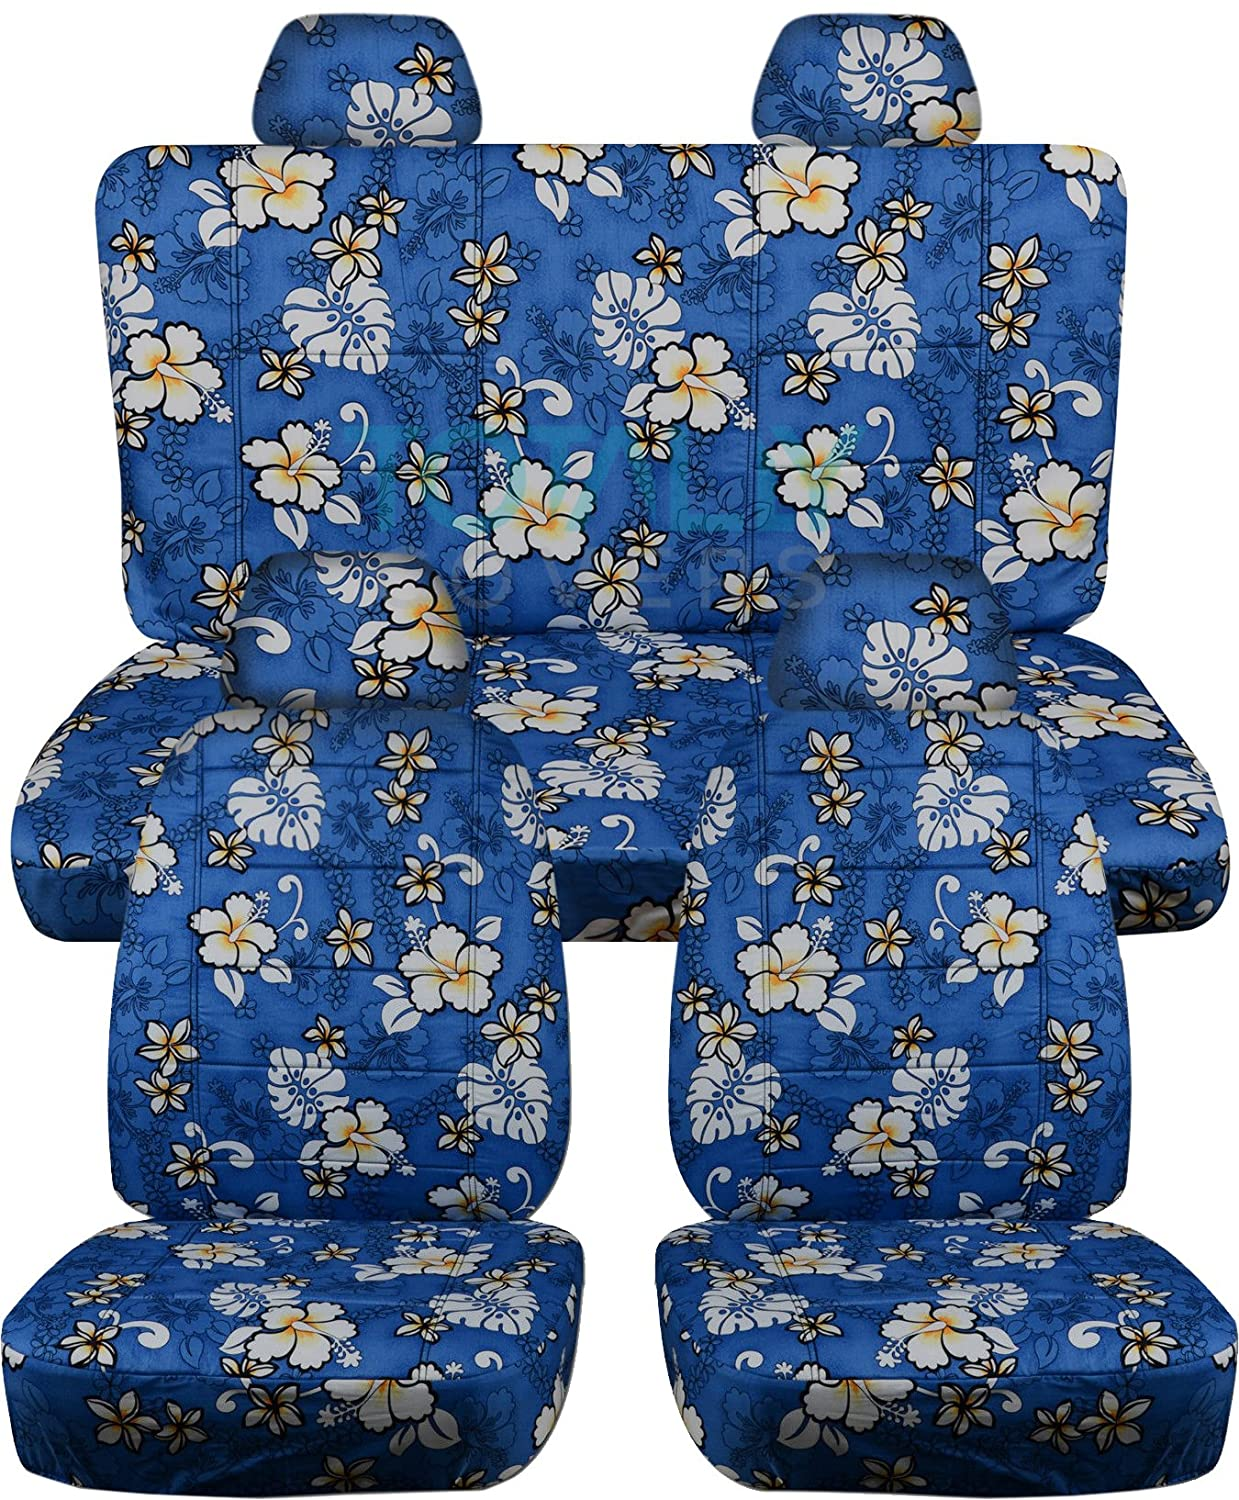 Totally Covers Compatible with 1998-2011 Volkswagen New Beetle/Bug Hawaiian Seat Covers: Blue w Flowers - Full Set Front & Rear (4 Prints) VW